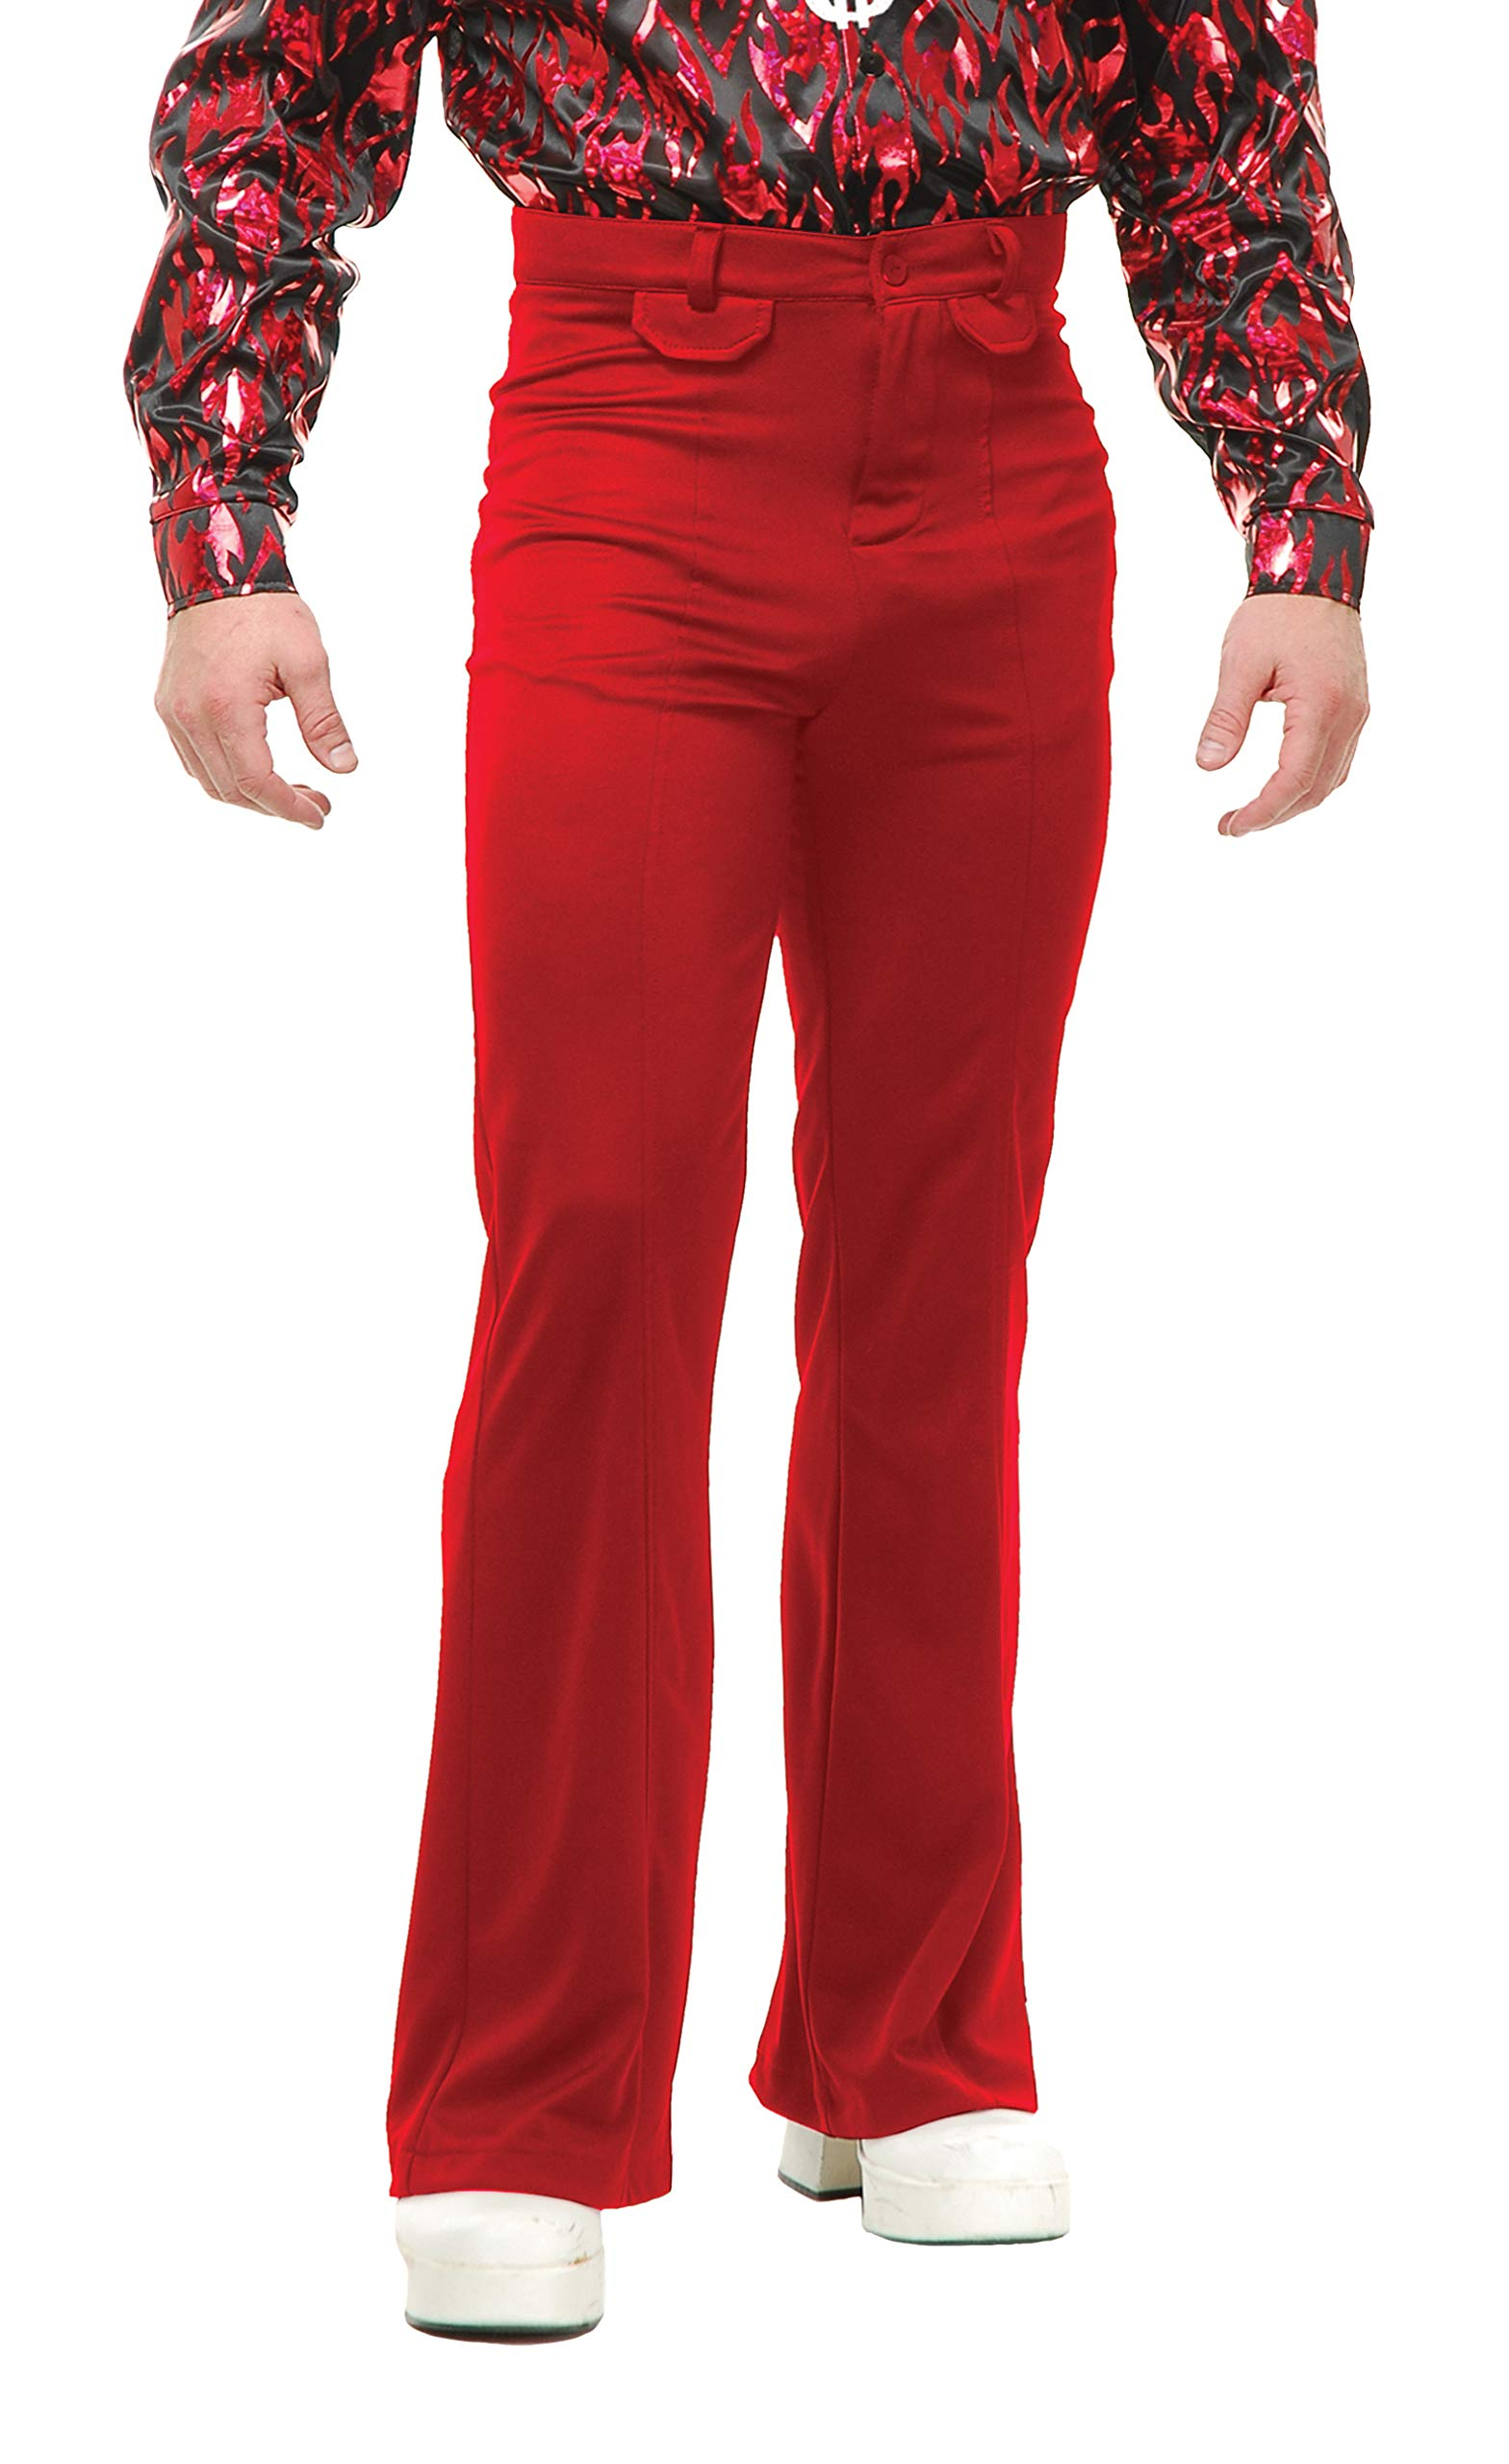 Charades Men's Disco Pants, Red, 38